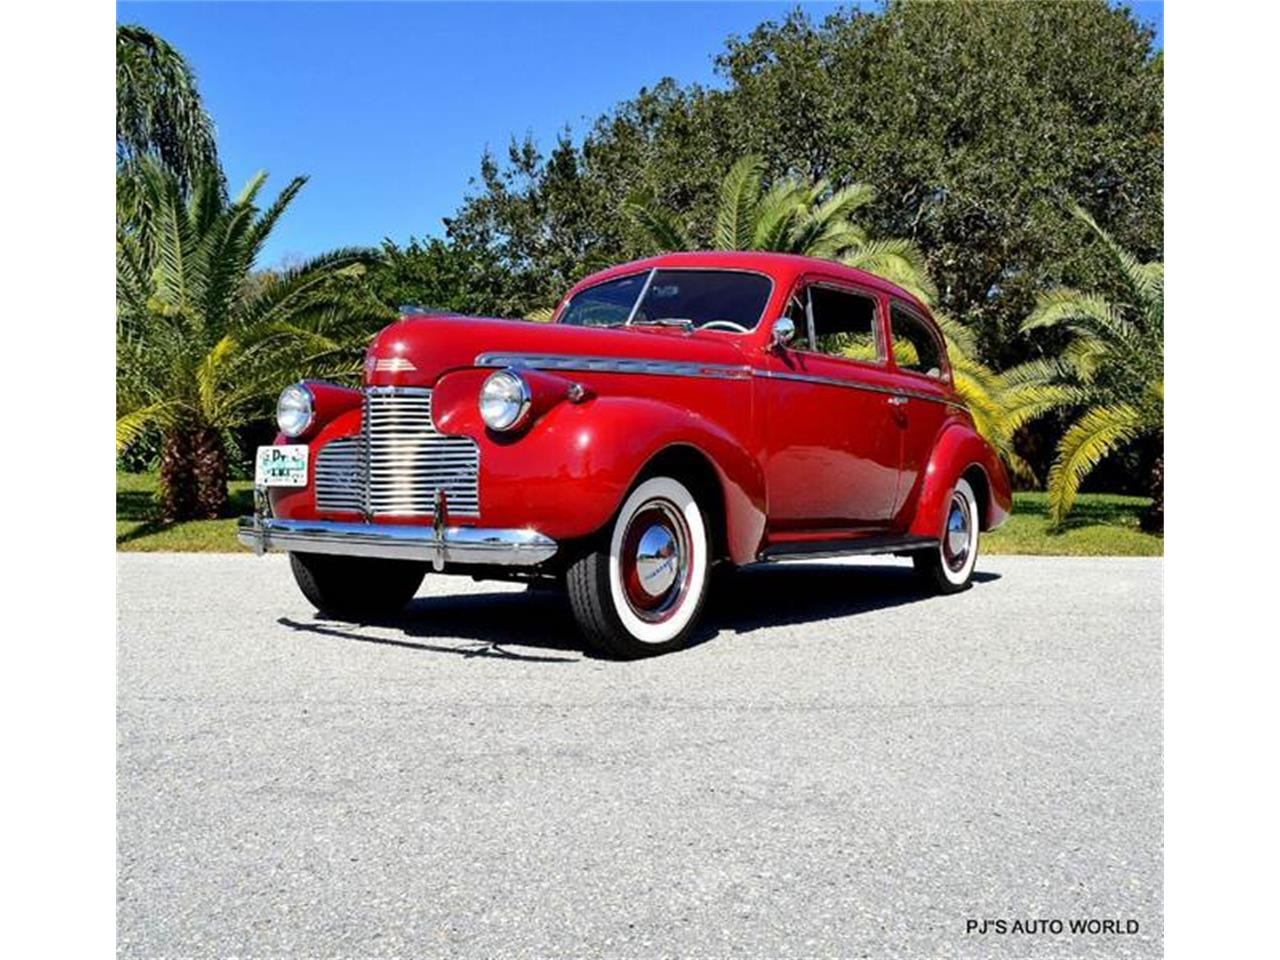 Large Picture of '40 Super Deluxe located in Clearwater Florida - $27,900.00 Offered by PJ's Auto World - GLMM